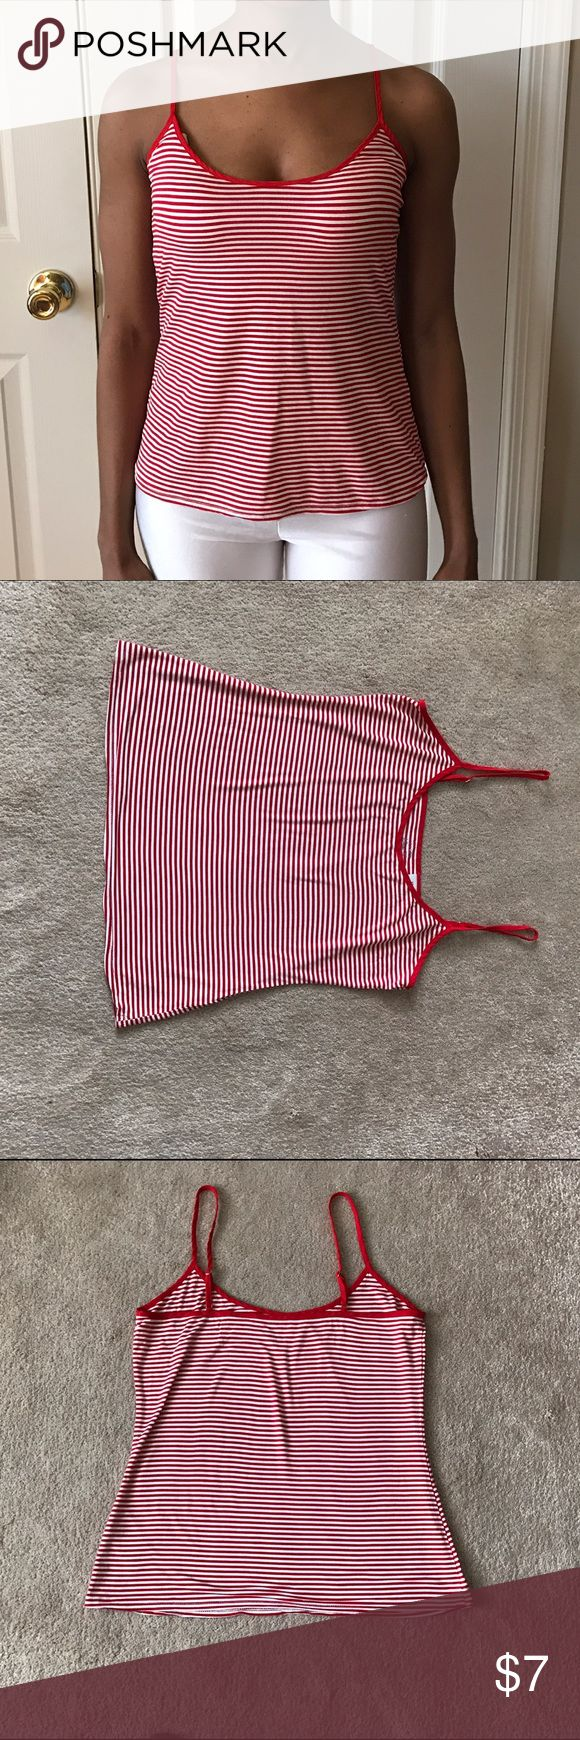 """J Crew Whisper Jersey Cali in Stripe There has never been a more comfortable tank. Look cute and comfy on a night in with your boo. I'm 5'4, 114lbs for size info. Worn a couple times. Perfect condition. From J Crew: """"Drapey fit. 15 3/4 body length. Our new fabric is whisper soft and super-drapey. With an easy fit and silky straps, this is the top you can't wait to change into the second you walk in the door (Netflix binges and lazy Sundays, we're looking at you).  Rayon/spandex. Machine…"""